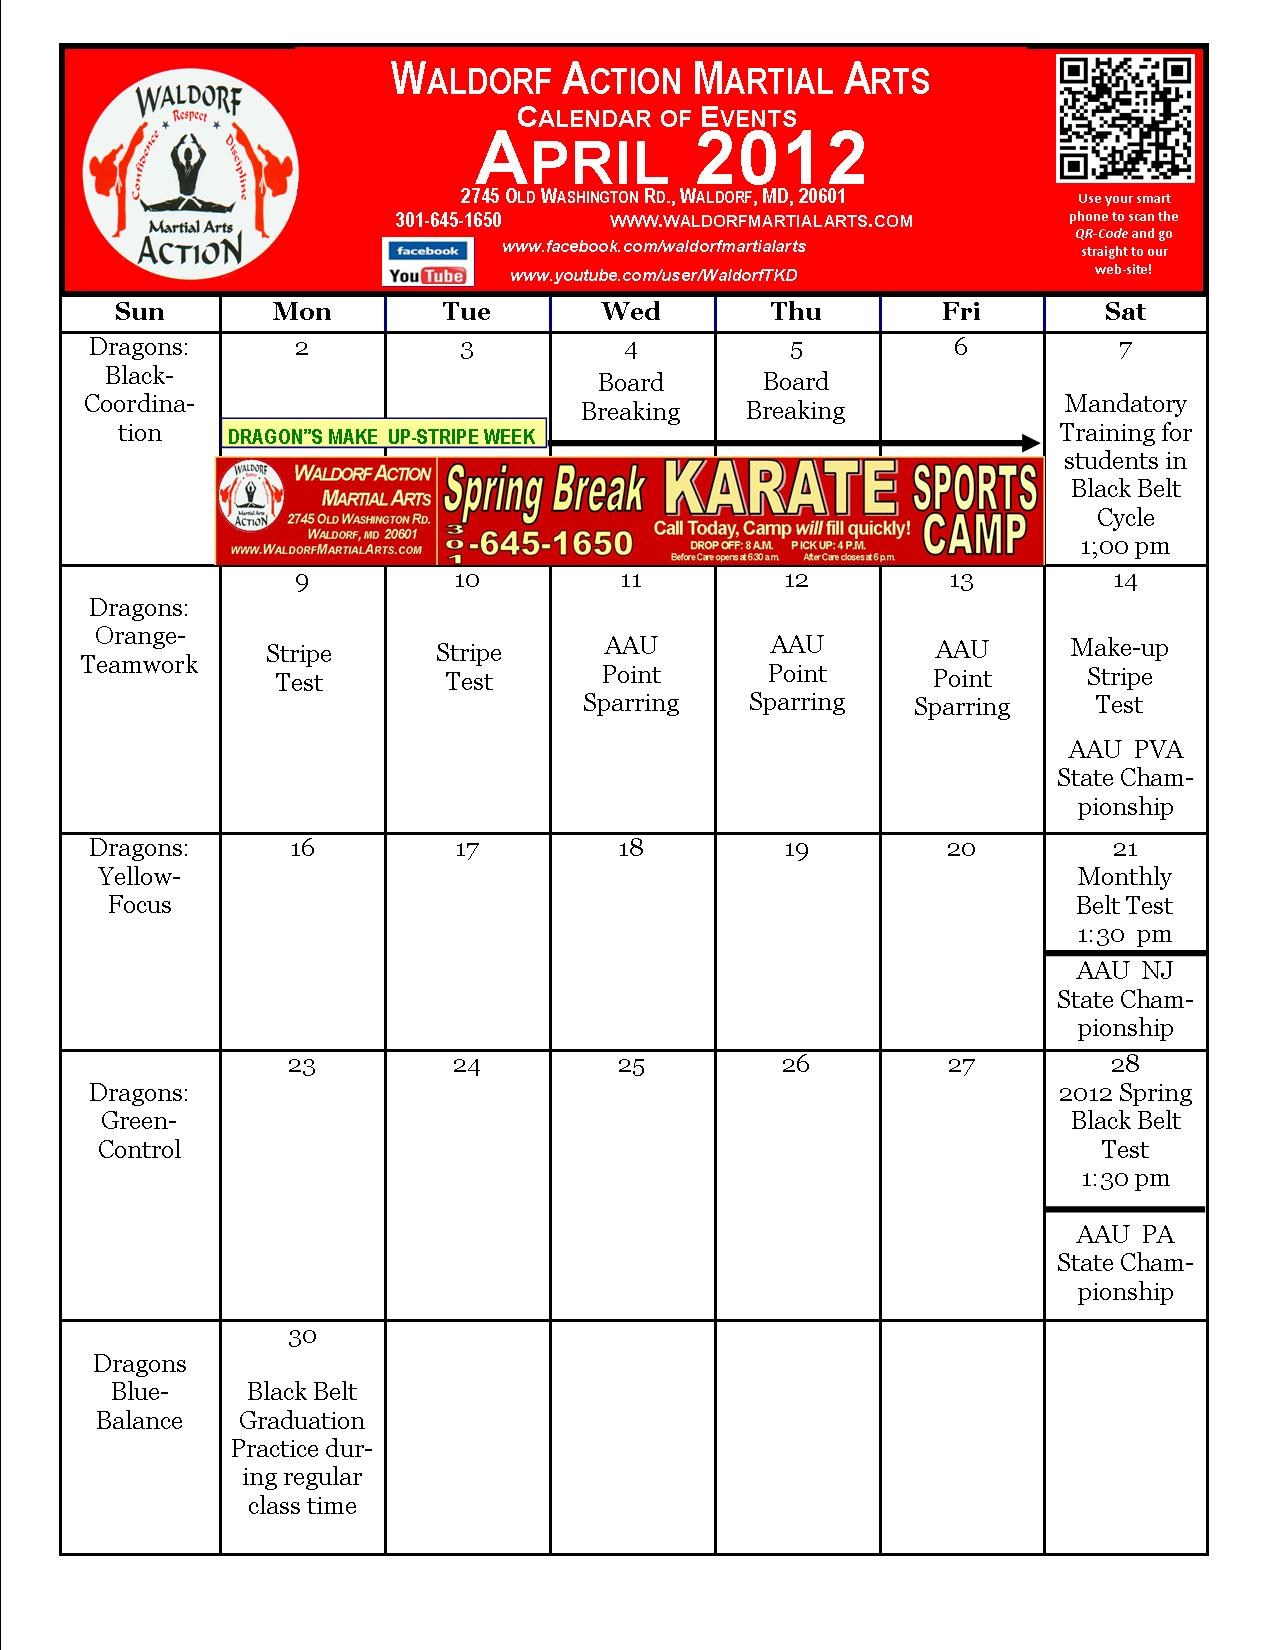 Calendar April Events : Wama april calendar of events waldorf martial arts